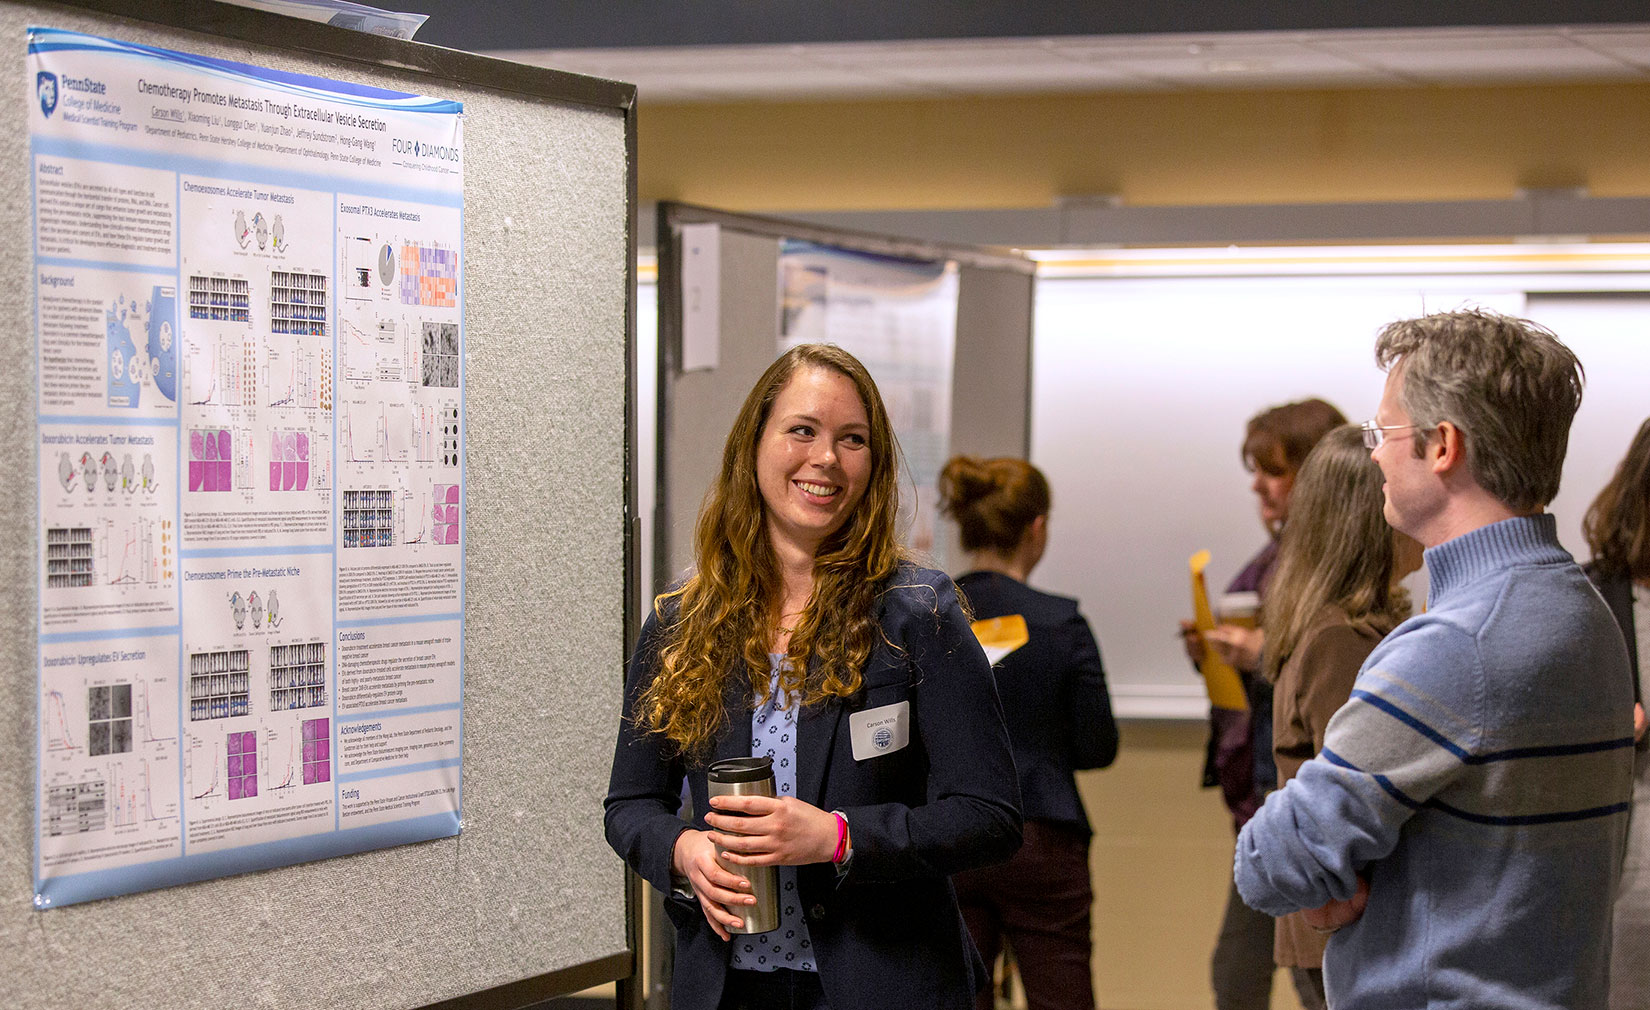 A woman stands near an academic poster, talking and smiling to another person.